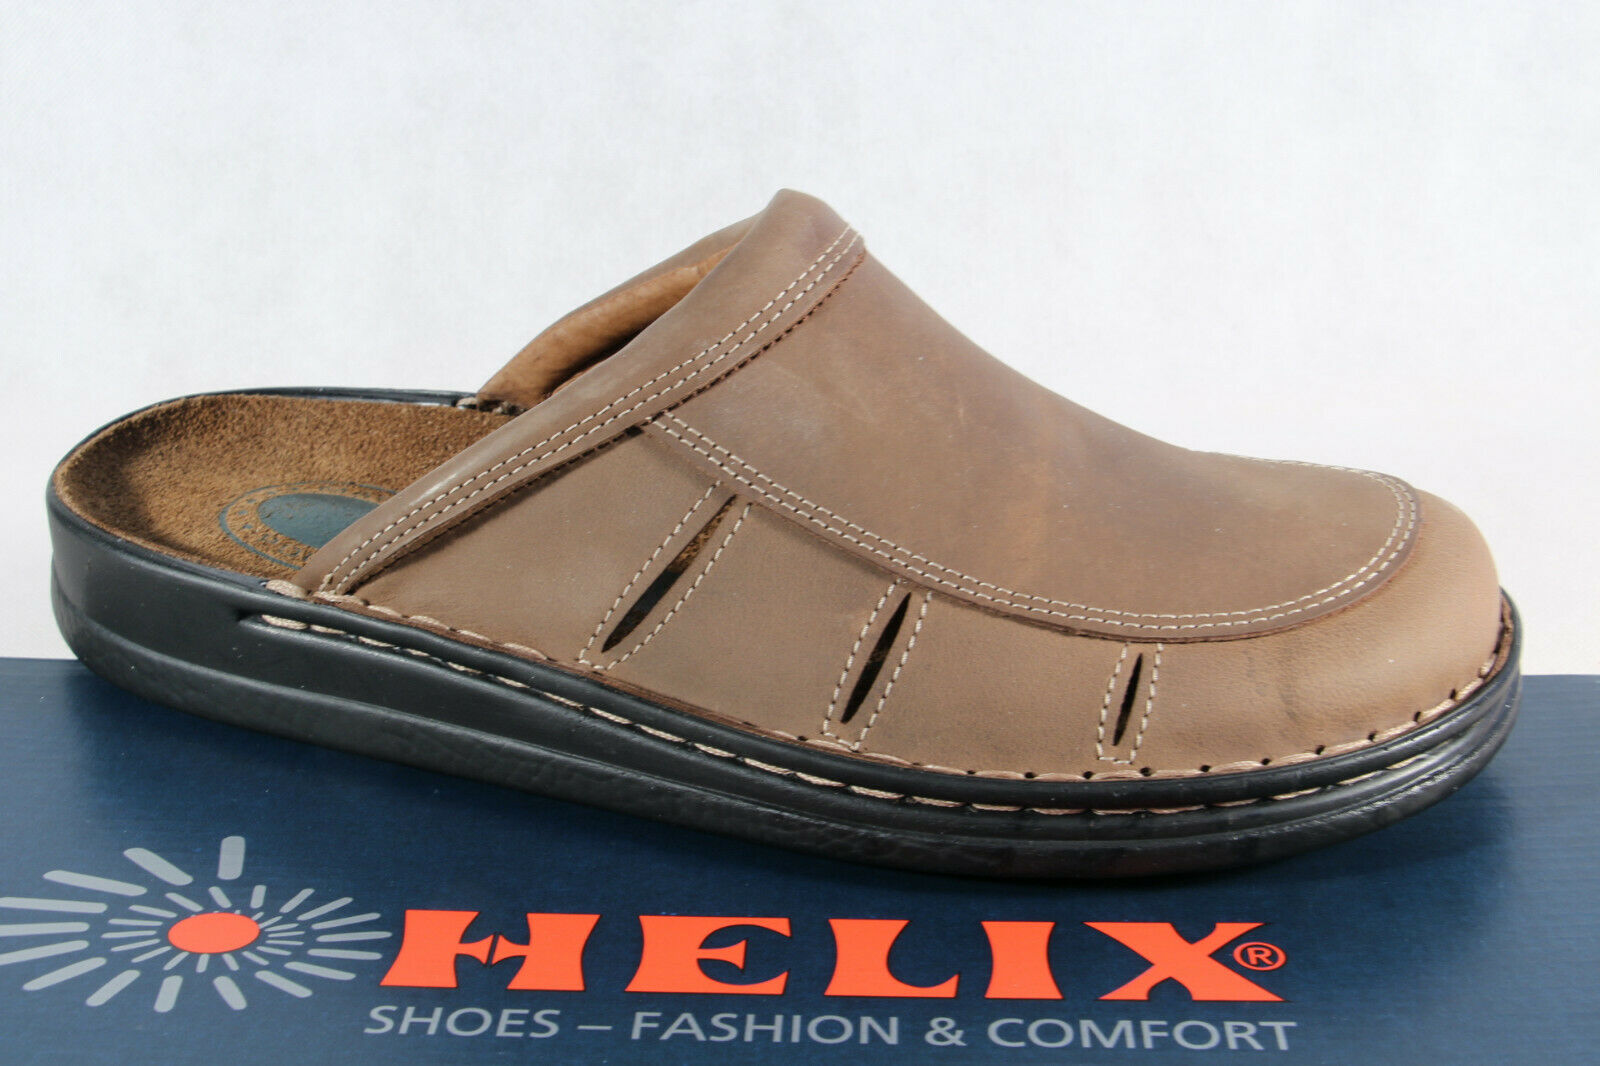 Helix Clogs Mules Slippers House shoes Brown Genuine Leather New